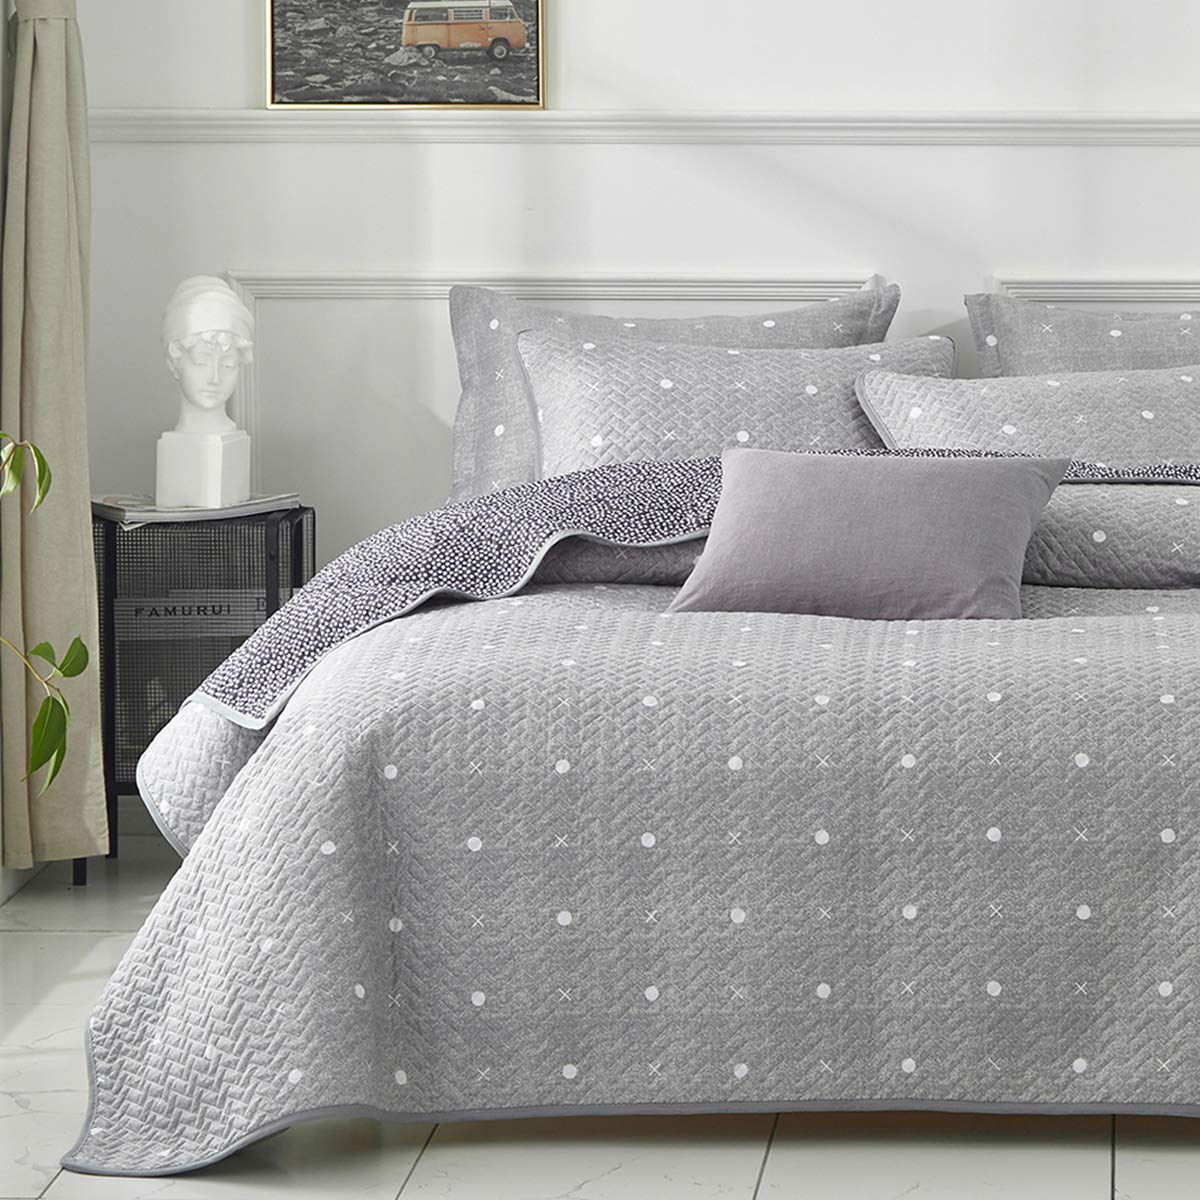 Uozzi Bedding 2 Piece Reversible Quilt Set Twin Size 68x86 Soft Microfiber Lightweight kids Coverlet Bedspread Summer Comforter Set Bed Cover Set Blanket for Kids Gray Dots & Cross (1 quilt + 1 shams)